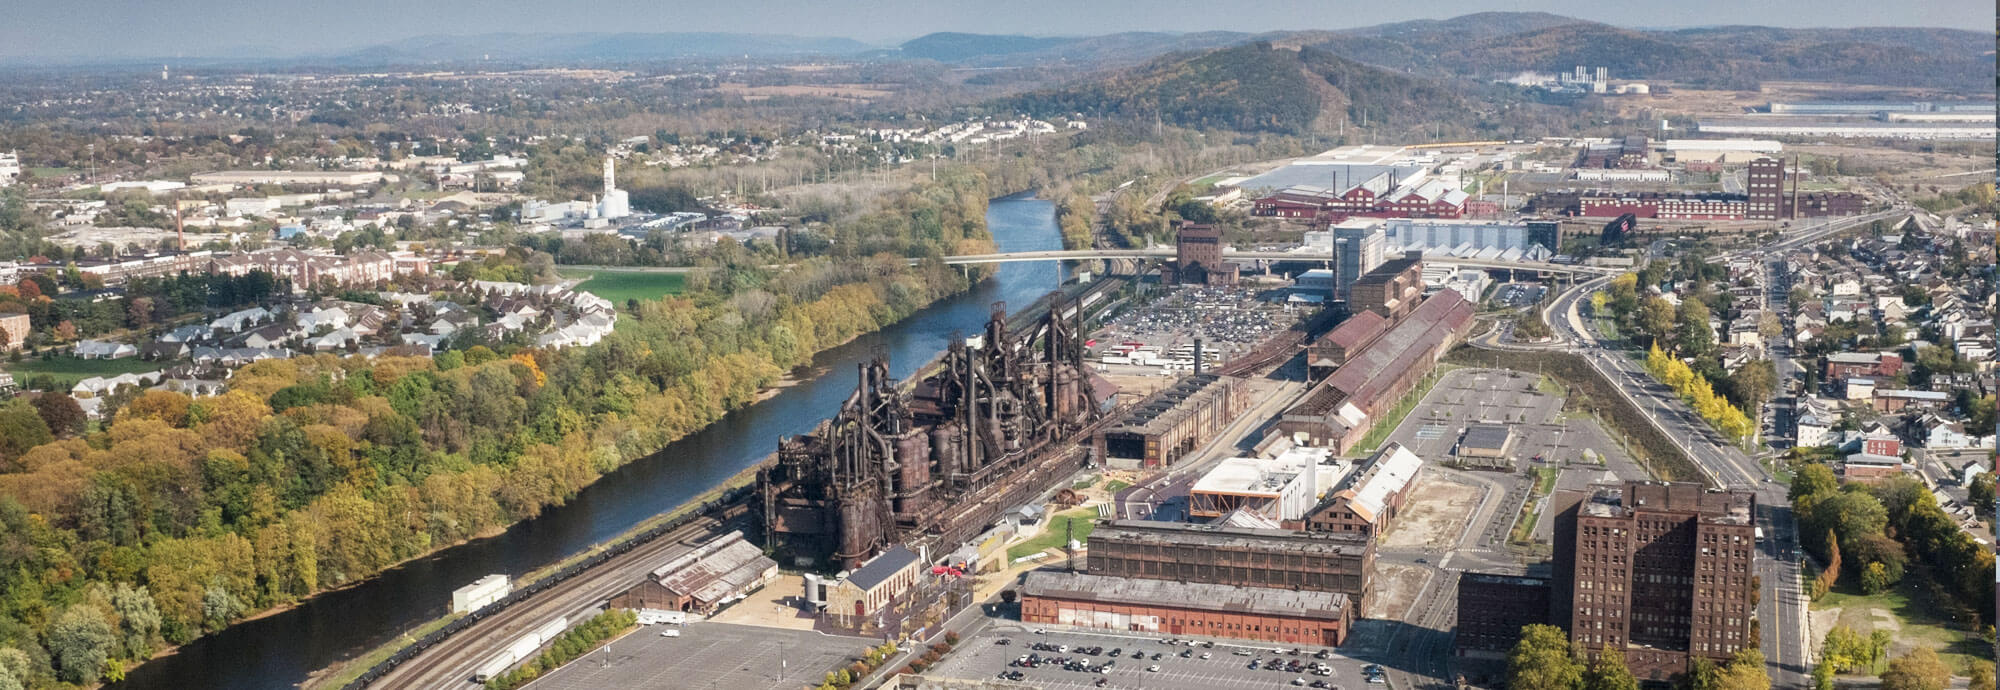 Aerial view of old Bethlehem SteelStacks